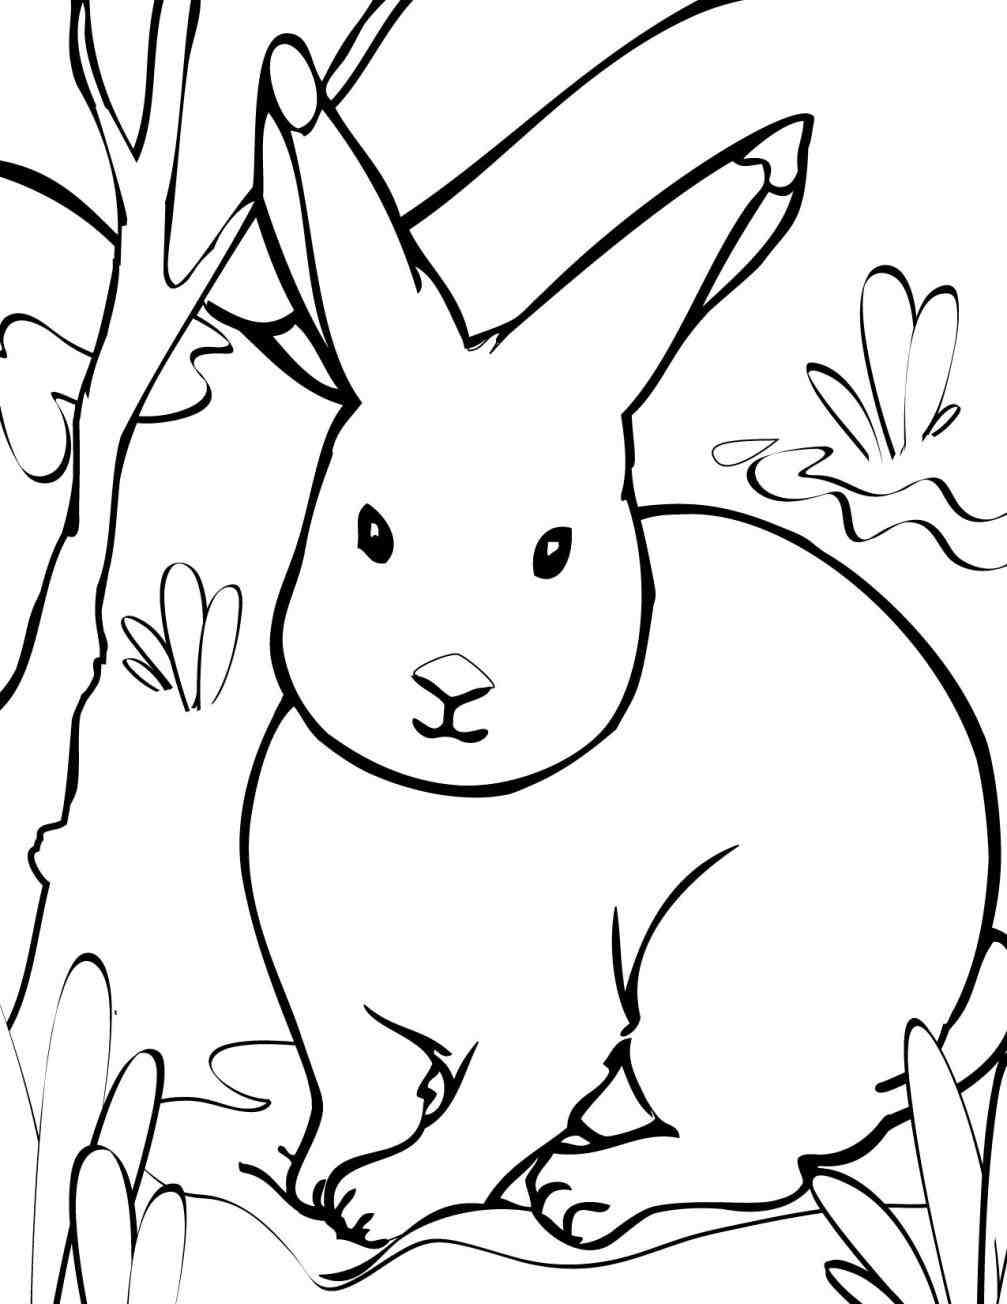 New cute christmas animal coloring pages at temasistemi.net ...